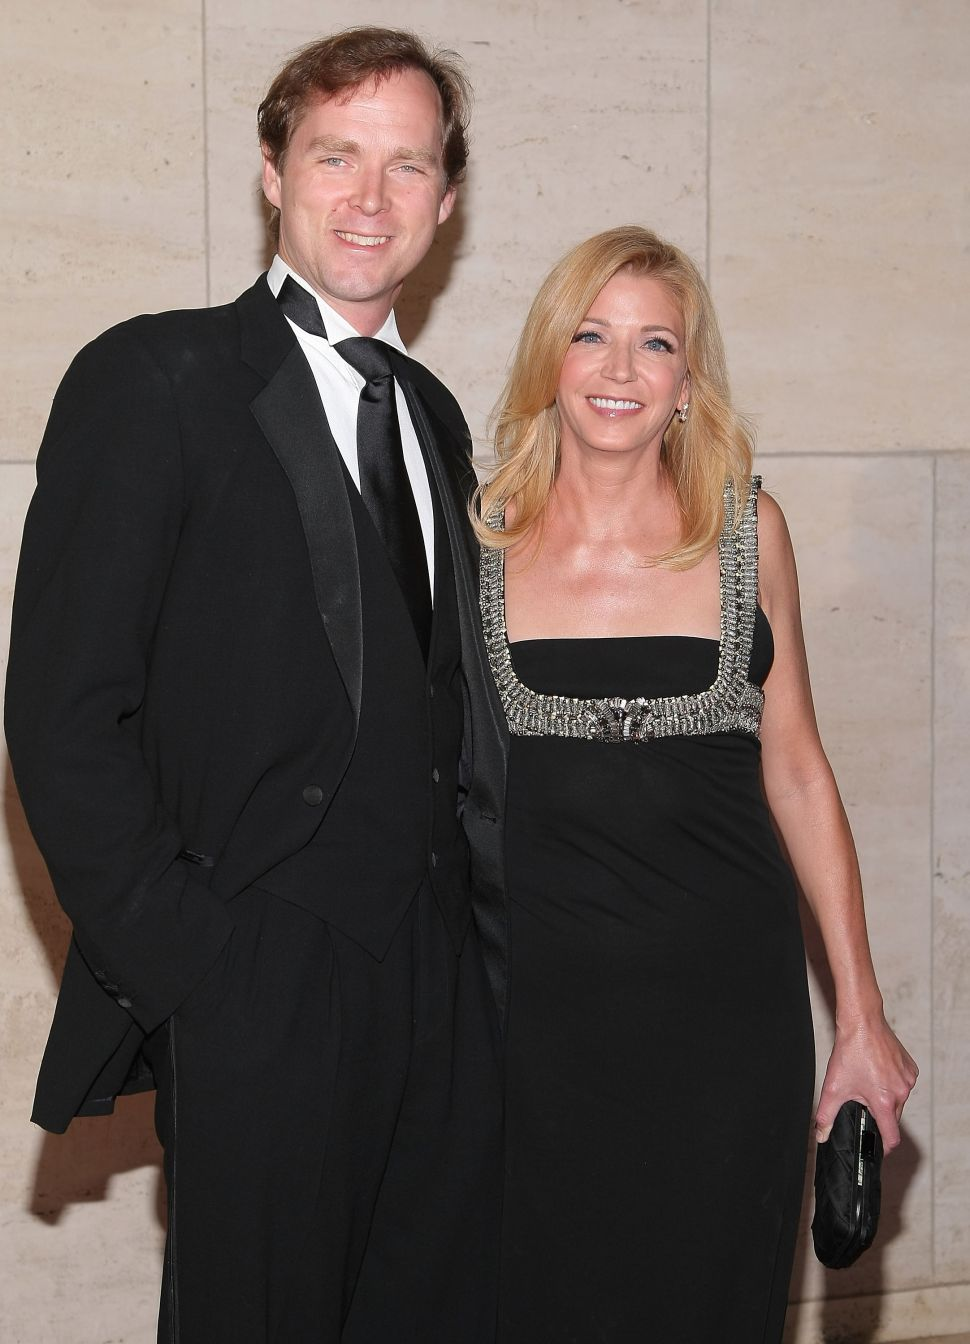 Candace Bushnell's Ex Sells Fifth Avenue Bachelor Pad